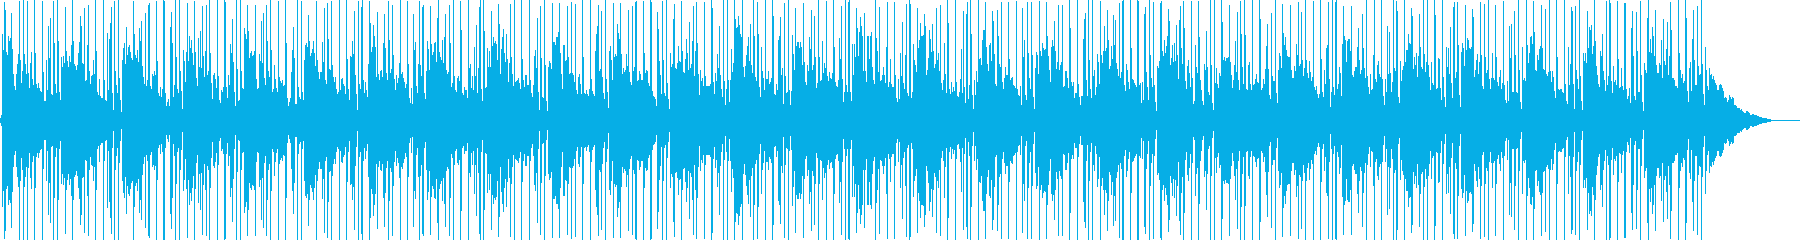 A relaxing melody's reproduced waveform